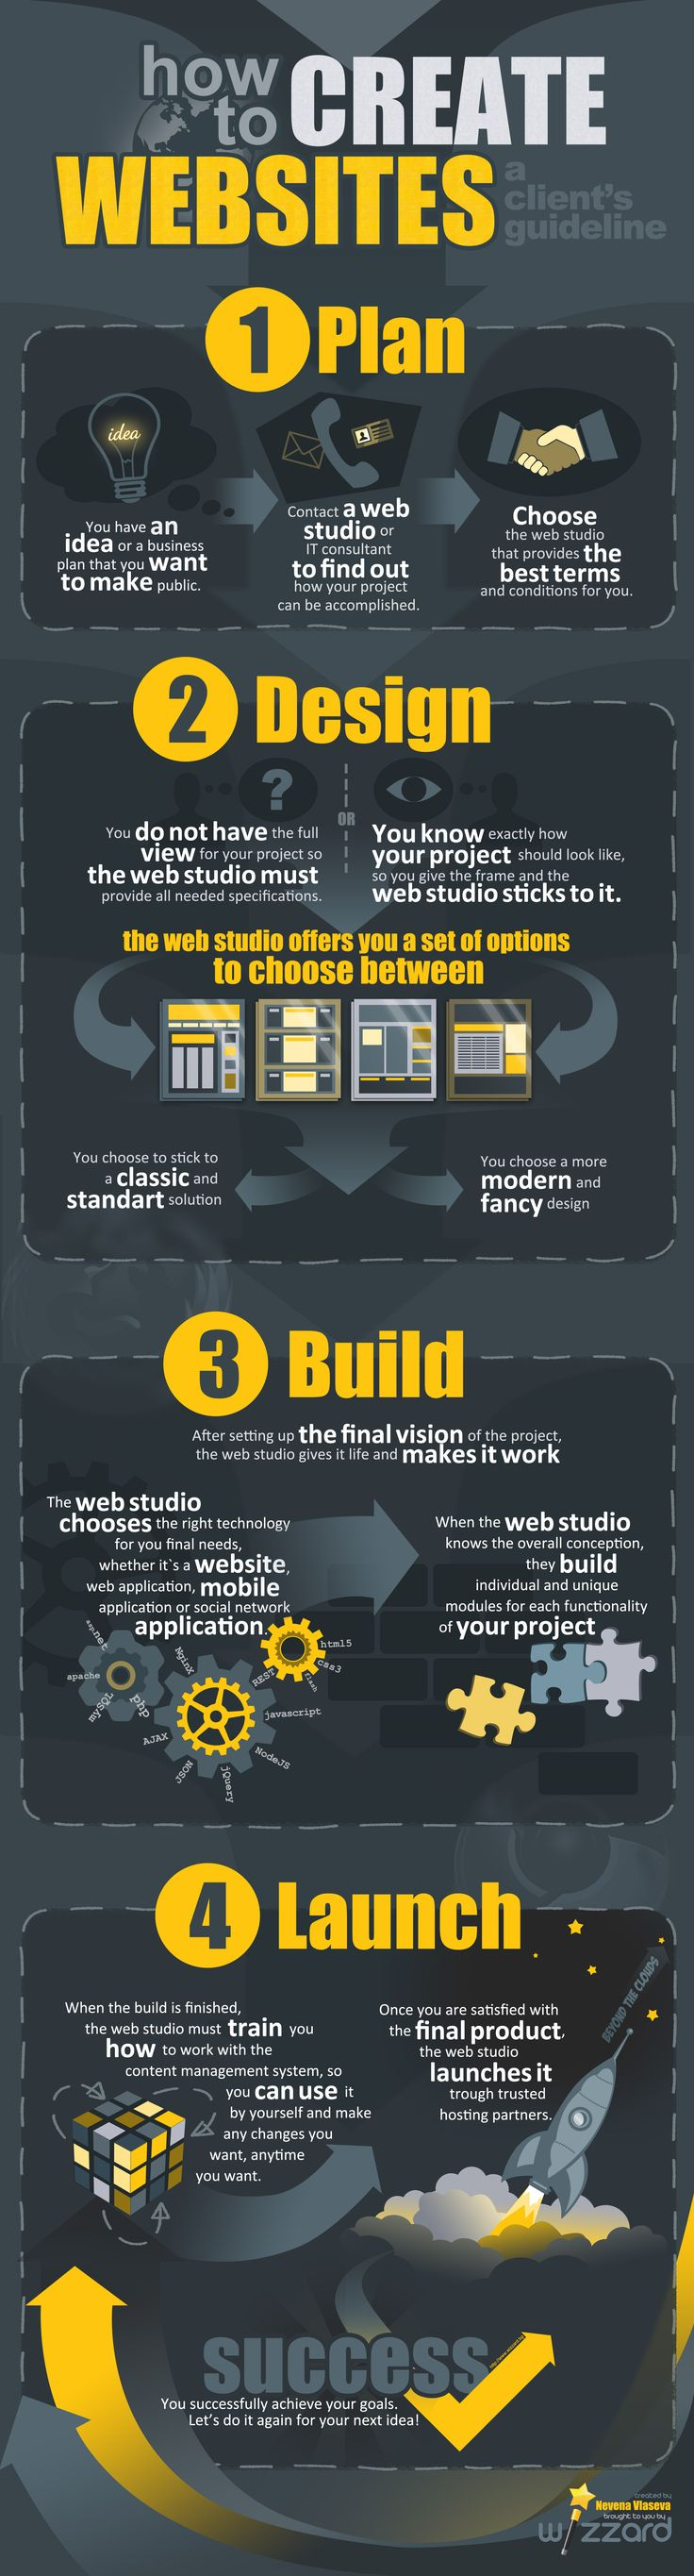 How To Create Websites [INFOGRAPHIC]  www.kickagency.com  https://www.facebook.com/kickagency  https://twitter.com/kickagency  http://www.linkedin.com/company/kick-agency